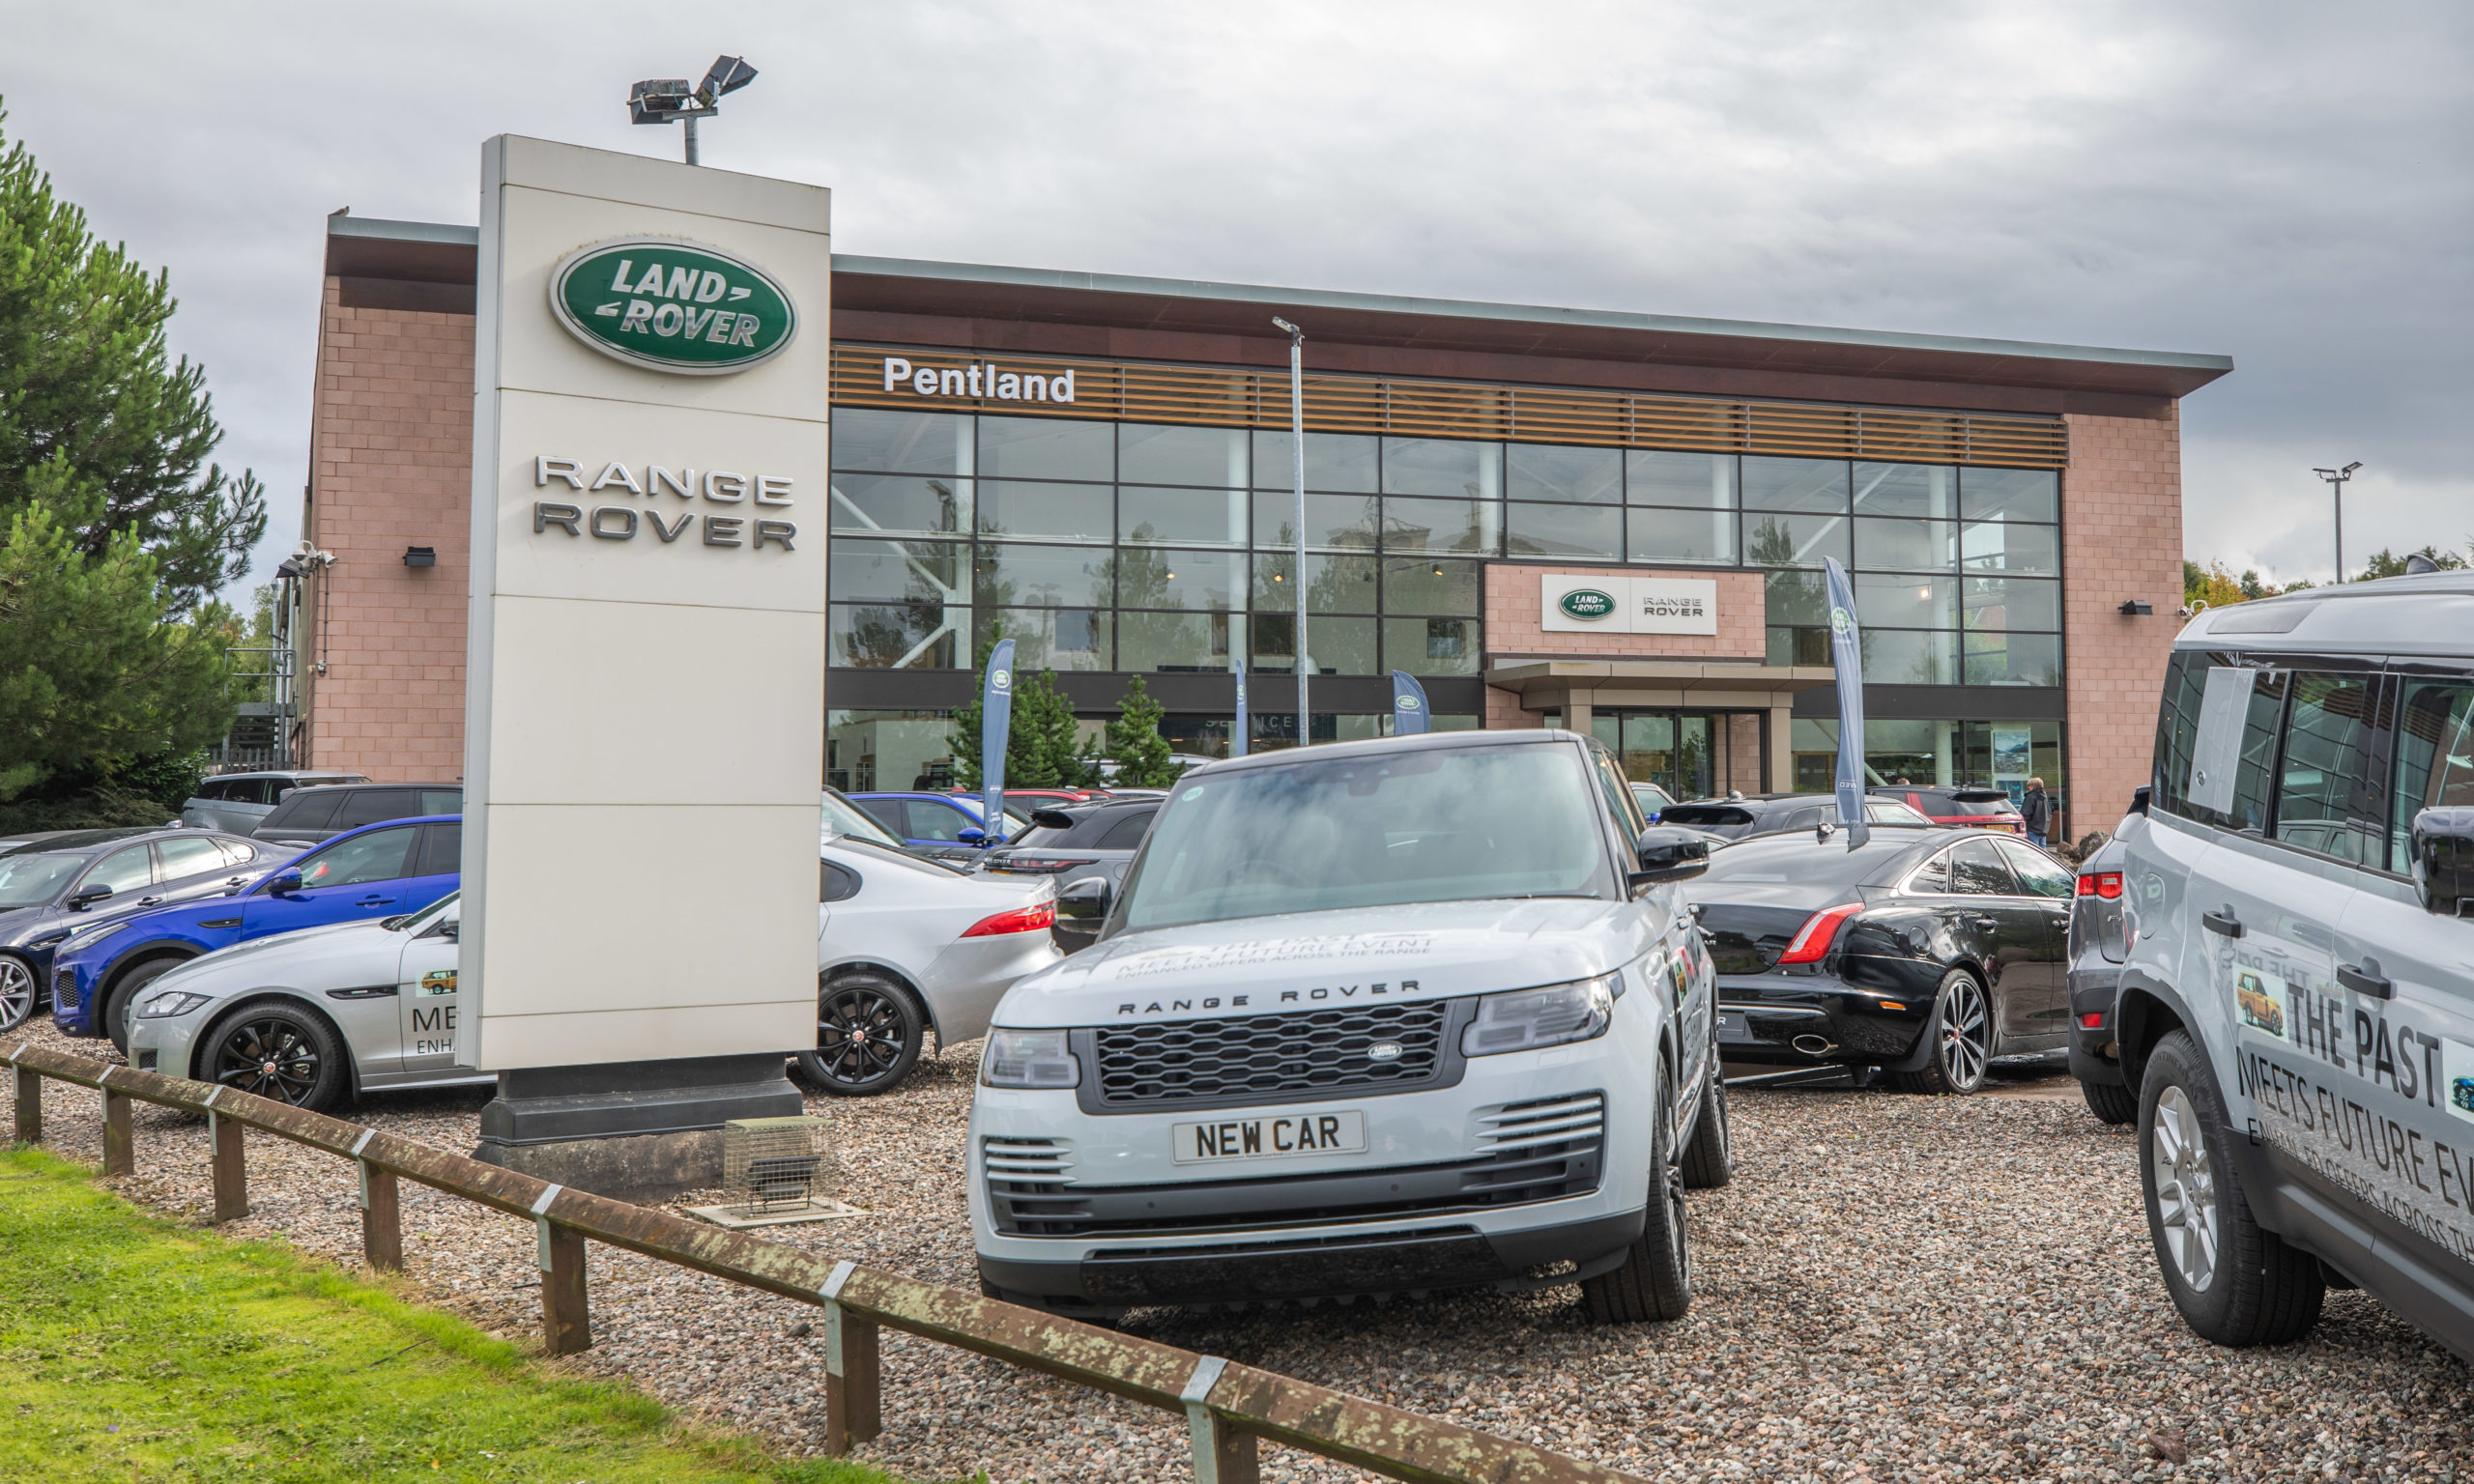 A spike of cases has been confirmed at a Land Rover dealership in Perth.